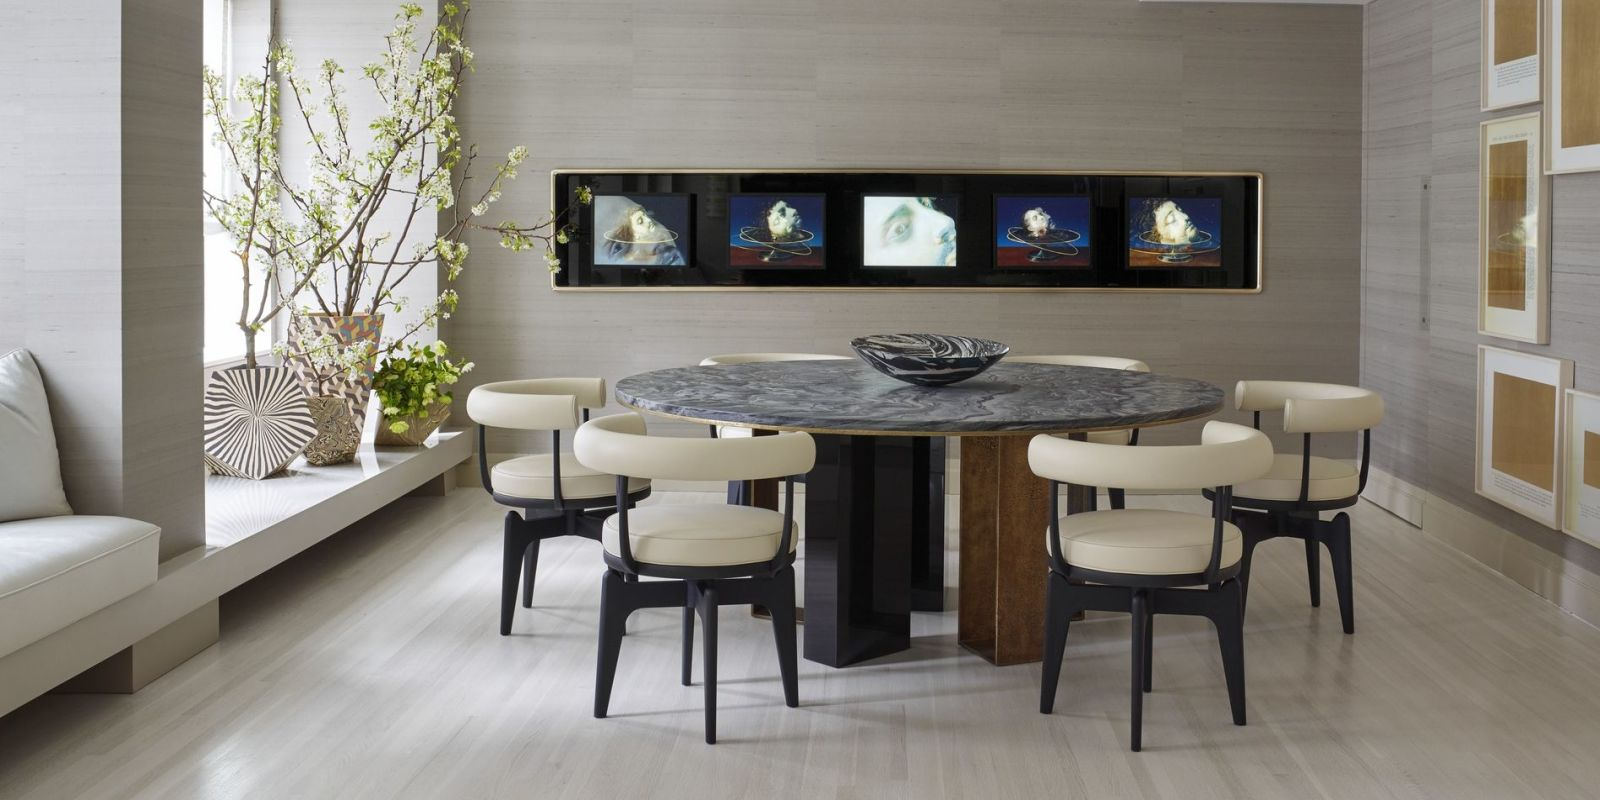 25 modern dining room decorating ideas contemporary dining room furniture - Dining room table decor ...